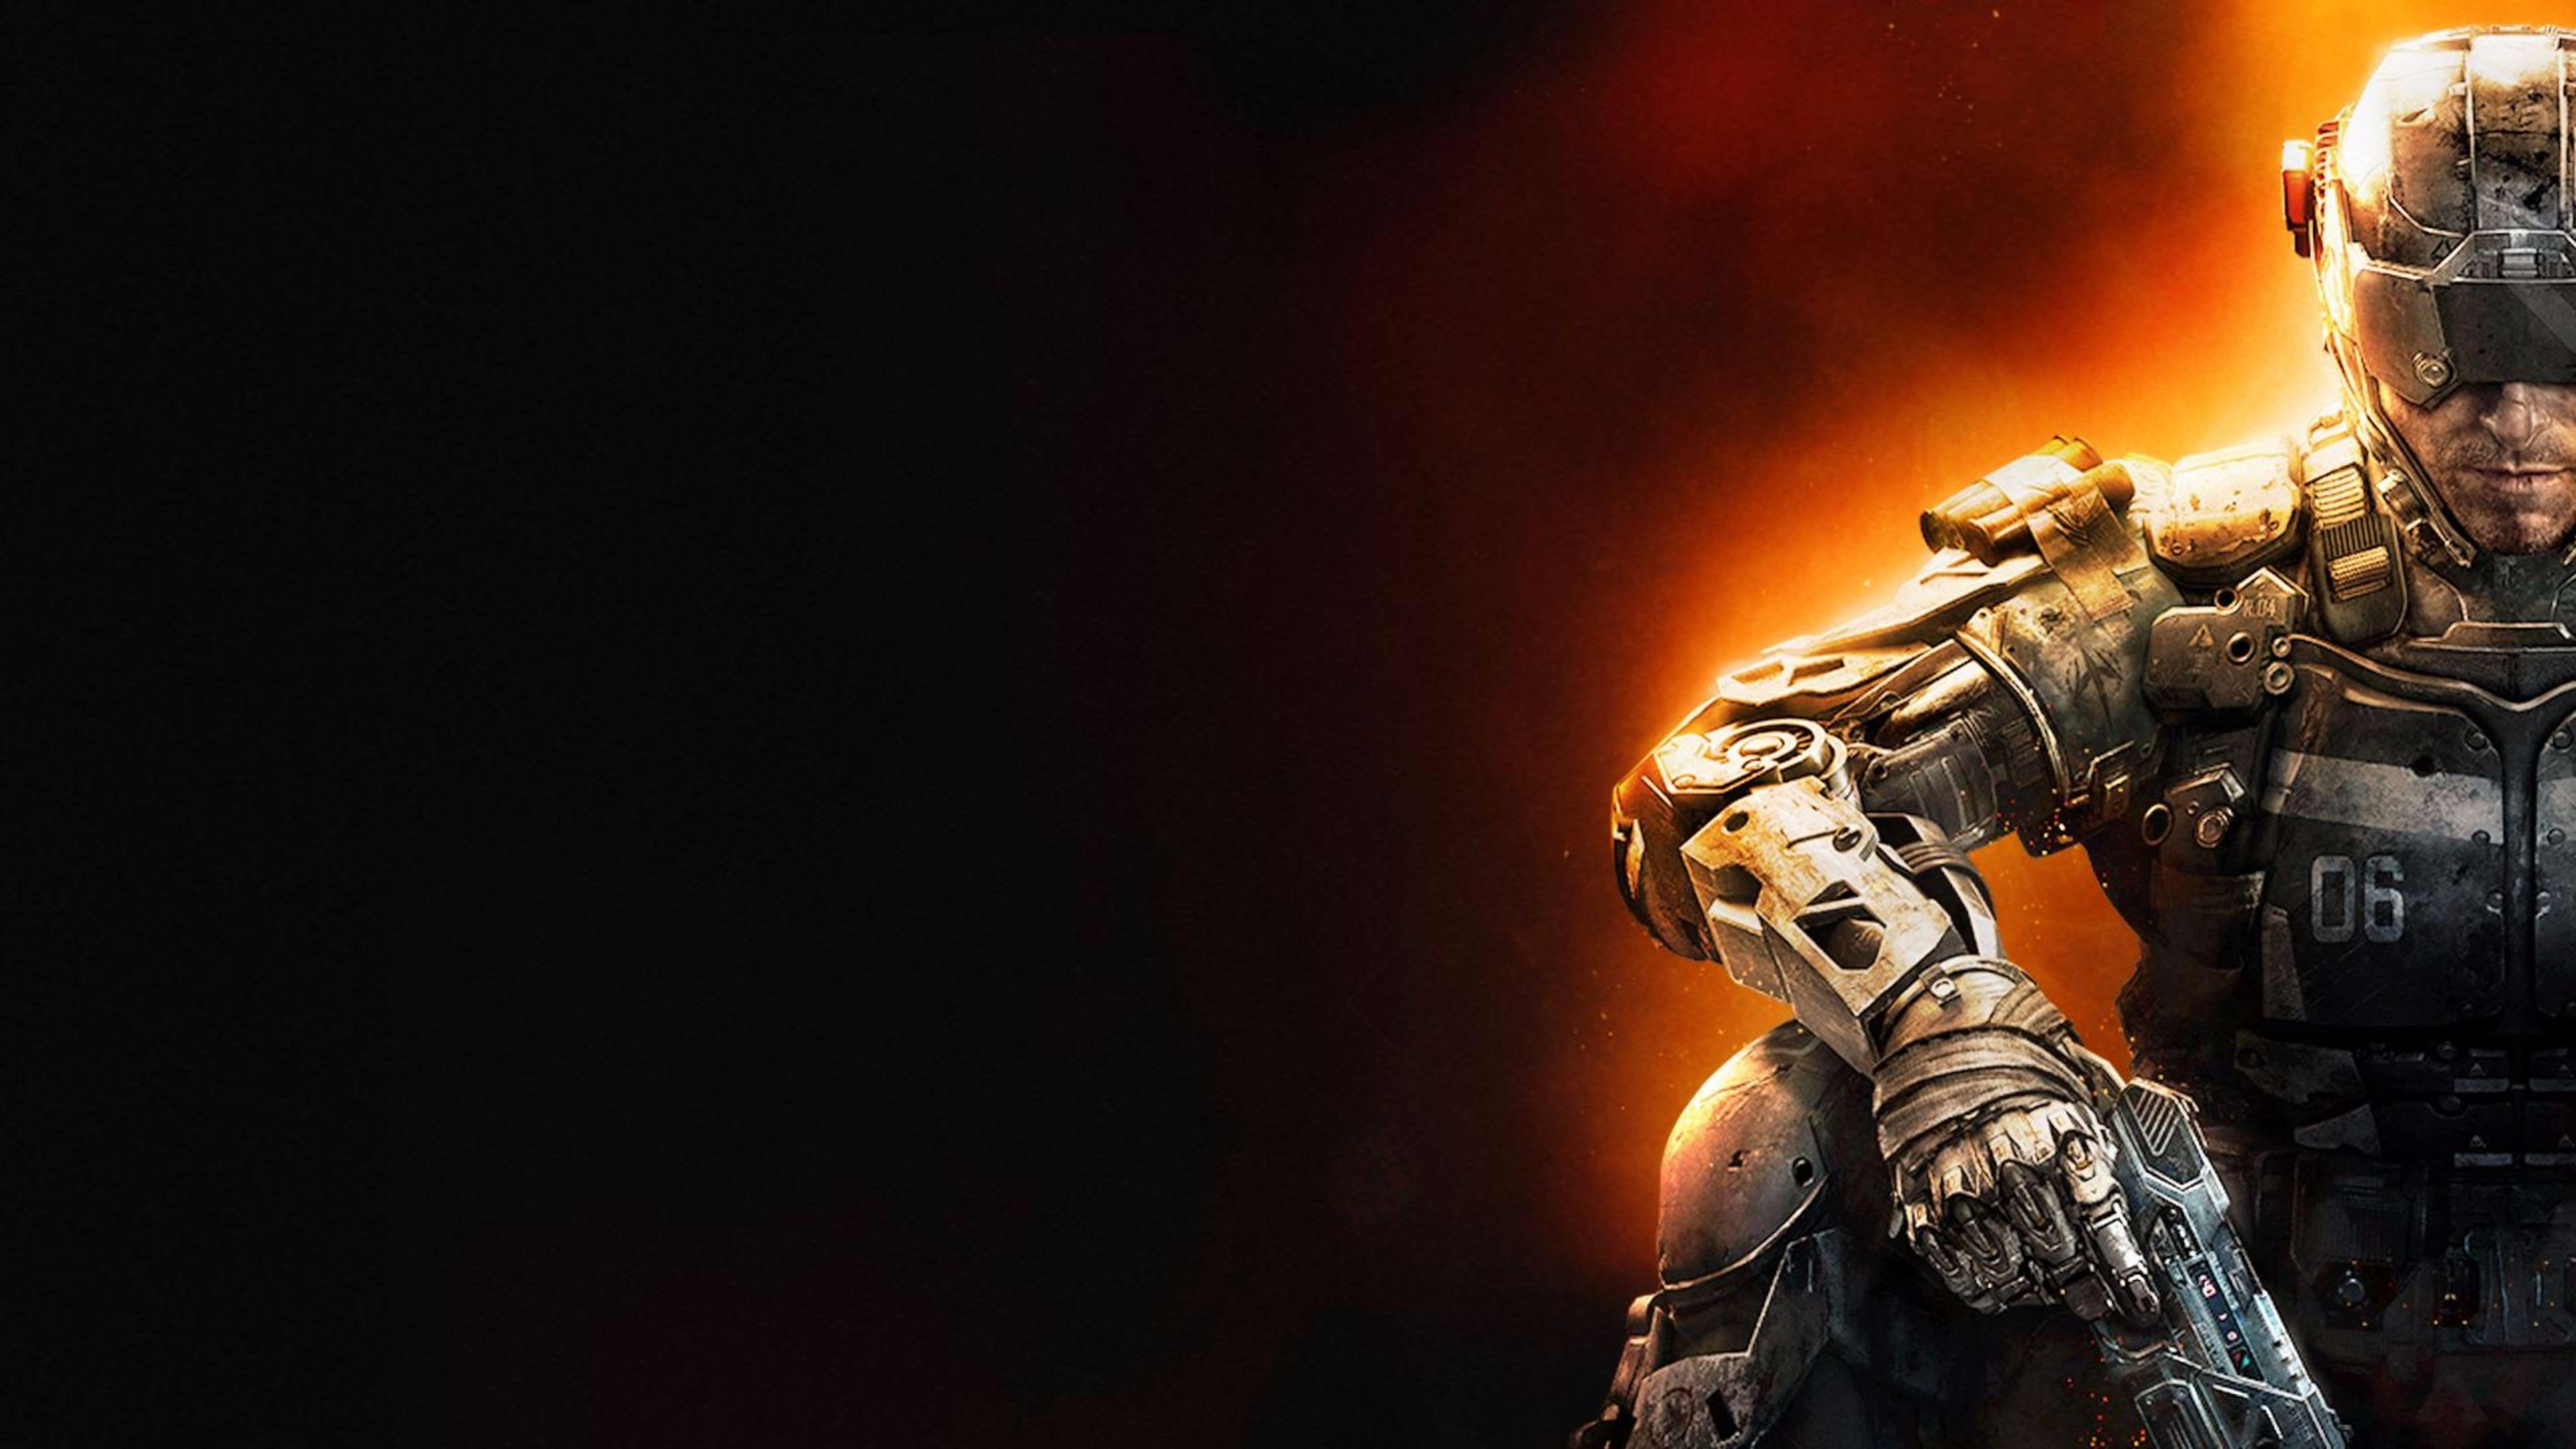 call of duty black ops 3 wallpapers wallpaper cave